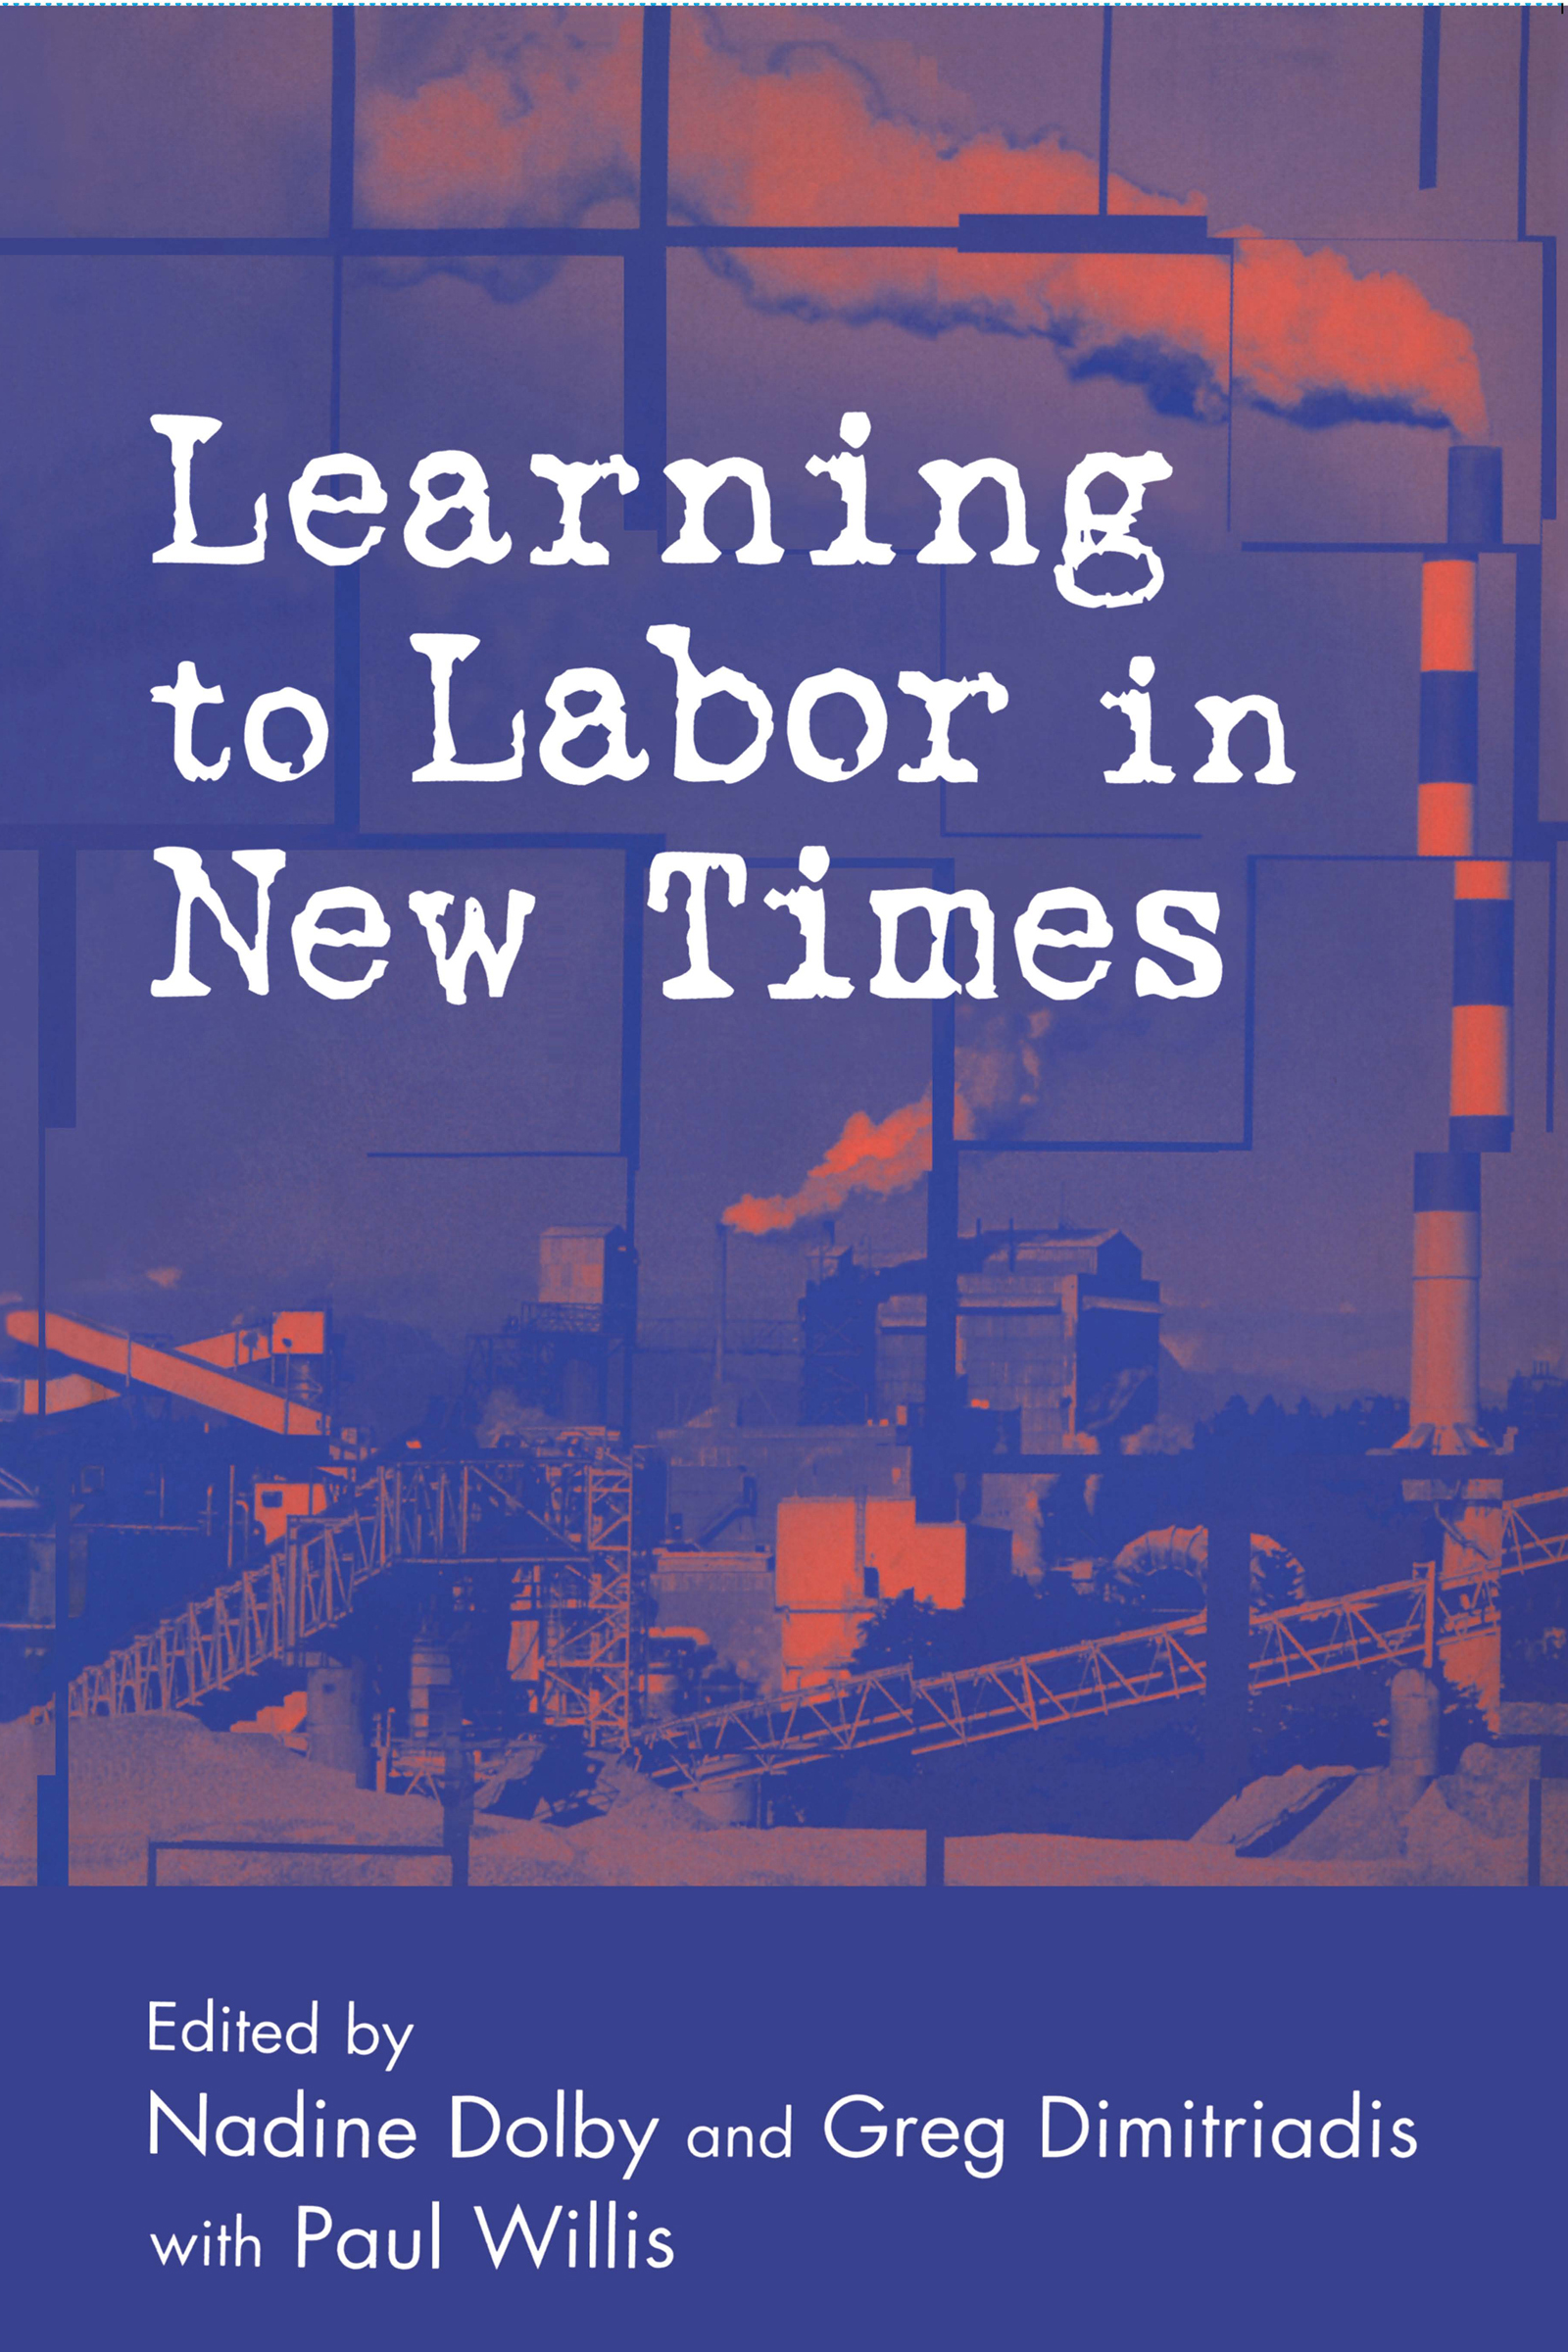 Download Ebook Learning to Labor in New Times by Nadine Dolby Pdf